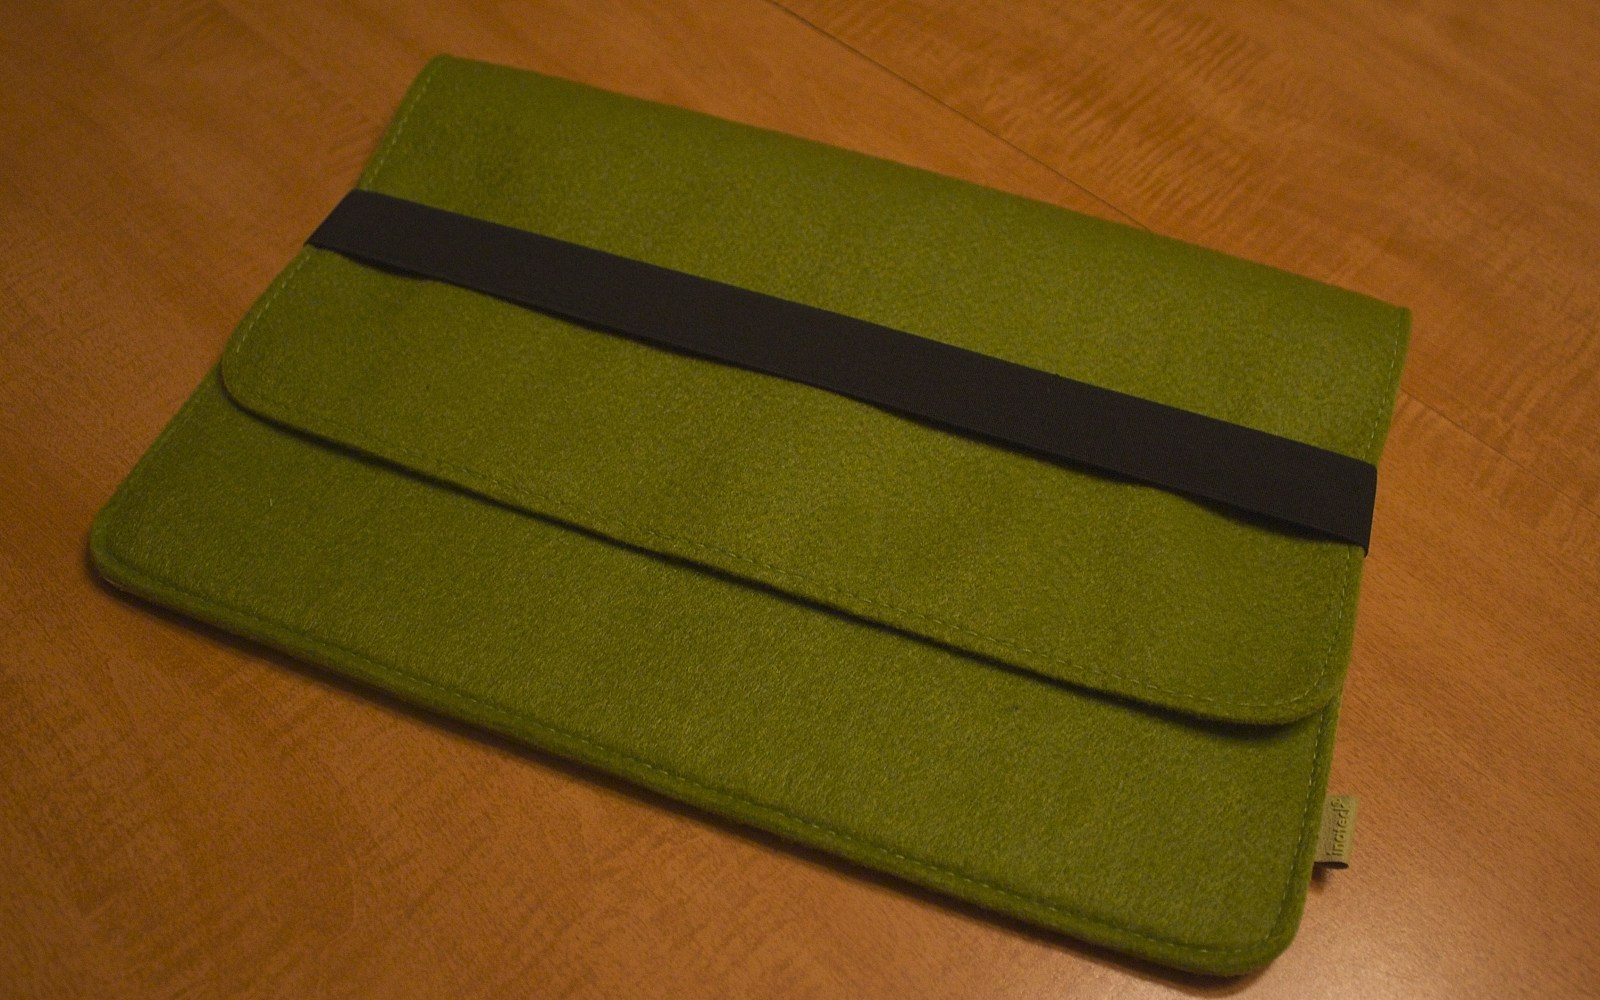 Review: Inateck's felt sleeve for the 13-inch Retina MacBook Pro and 11-inch MacBook Air